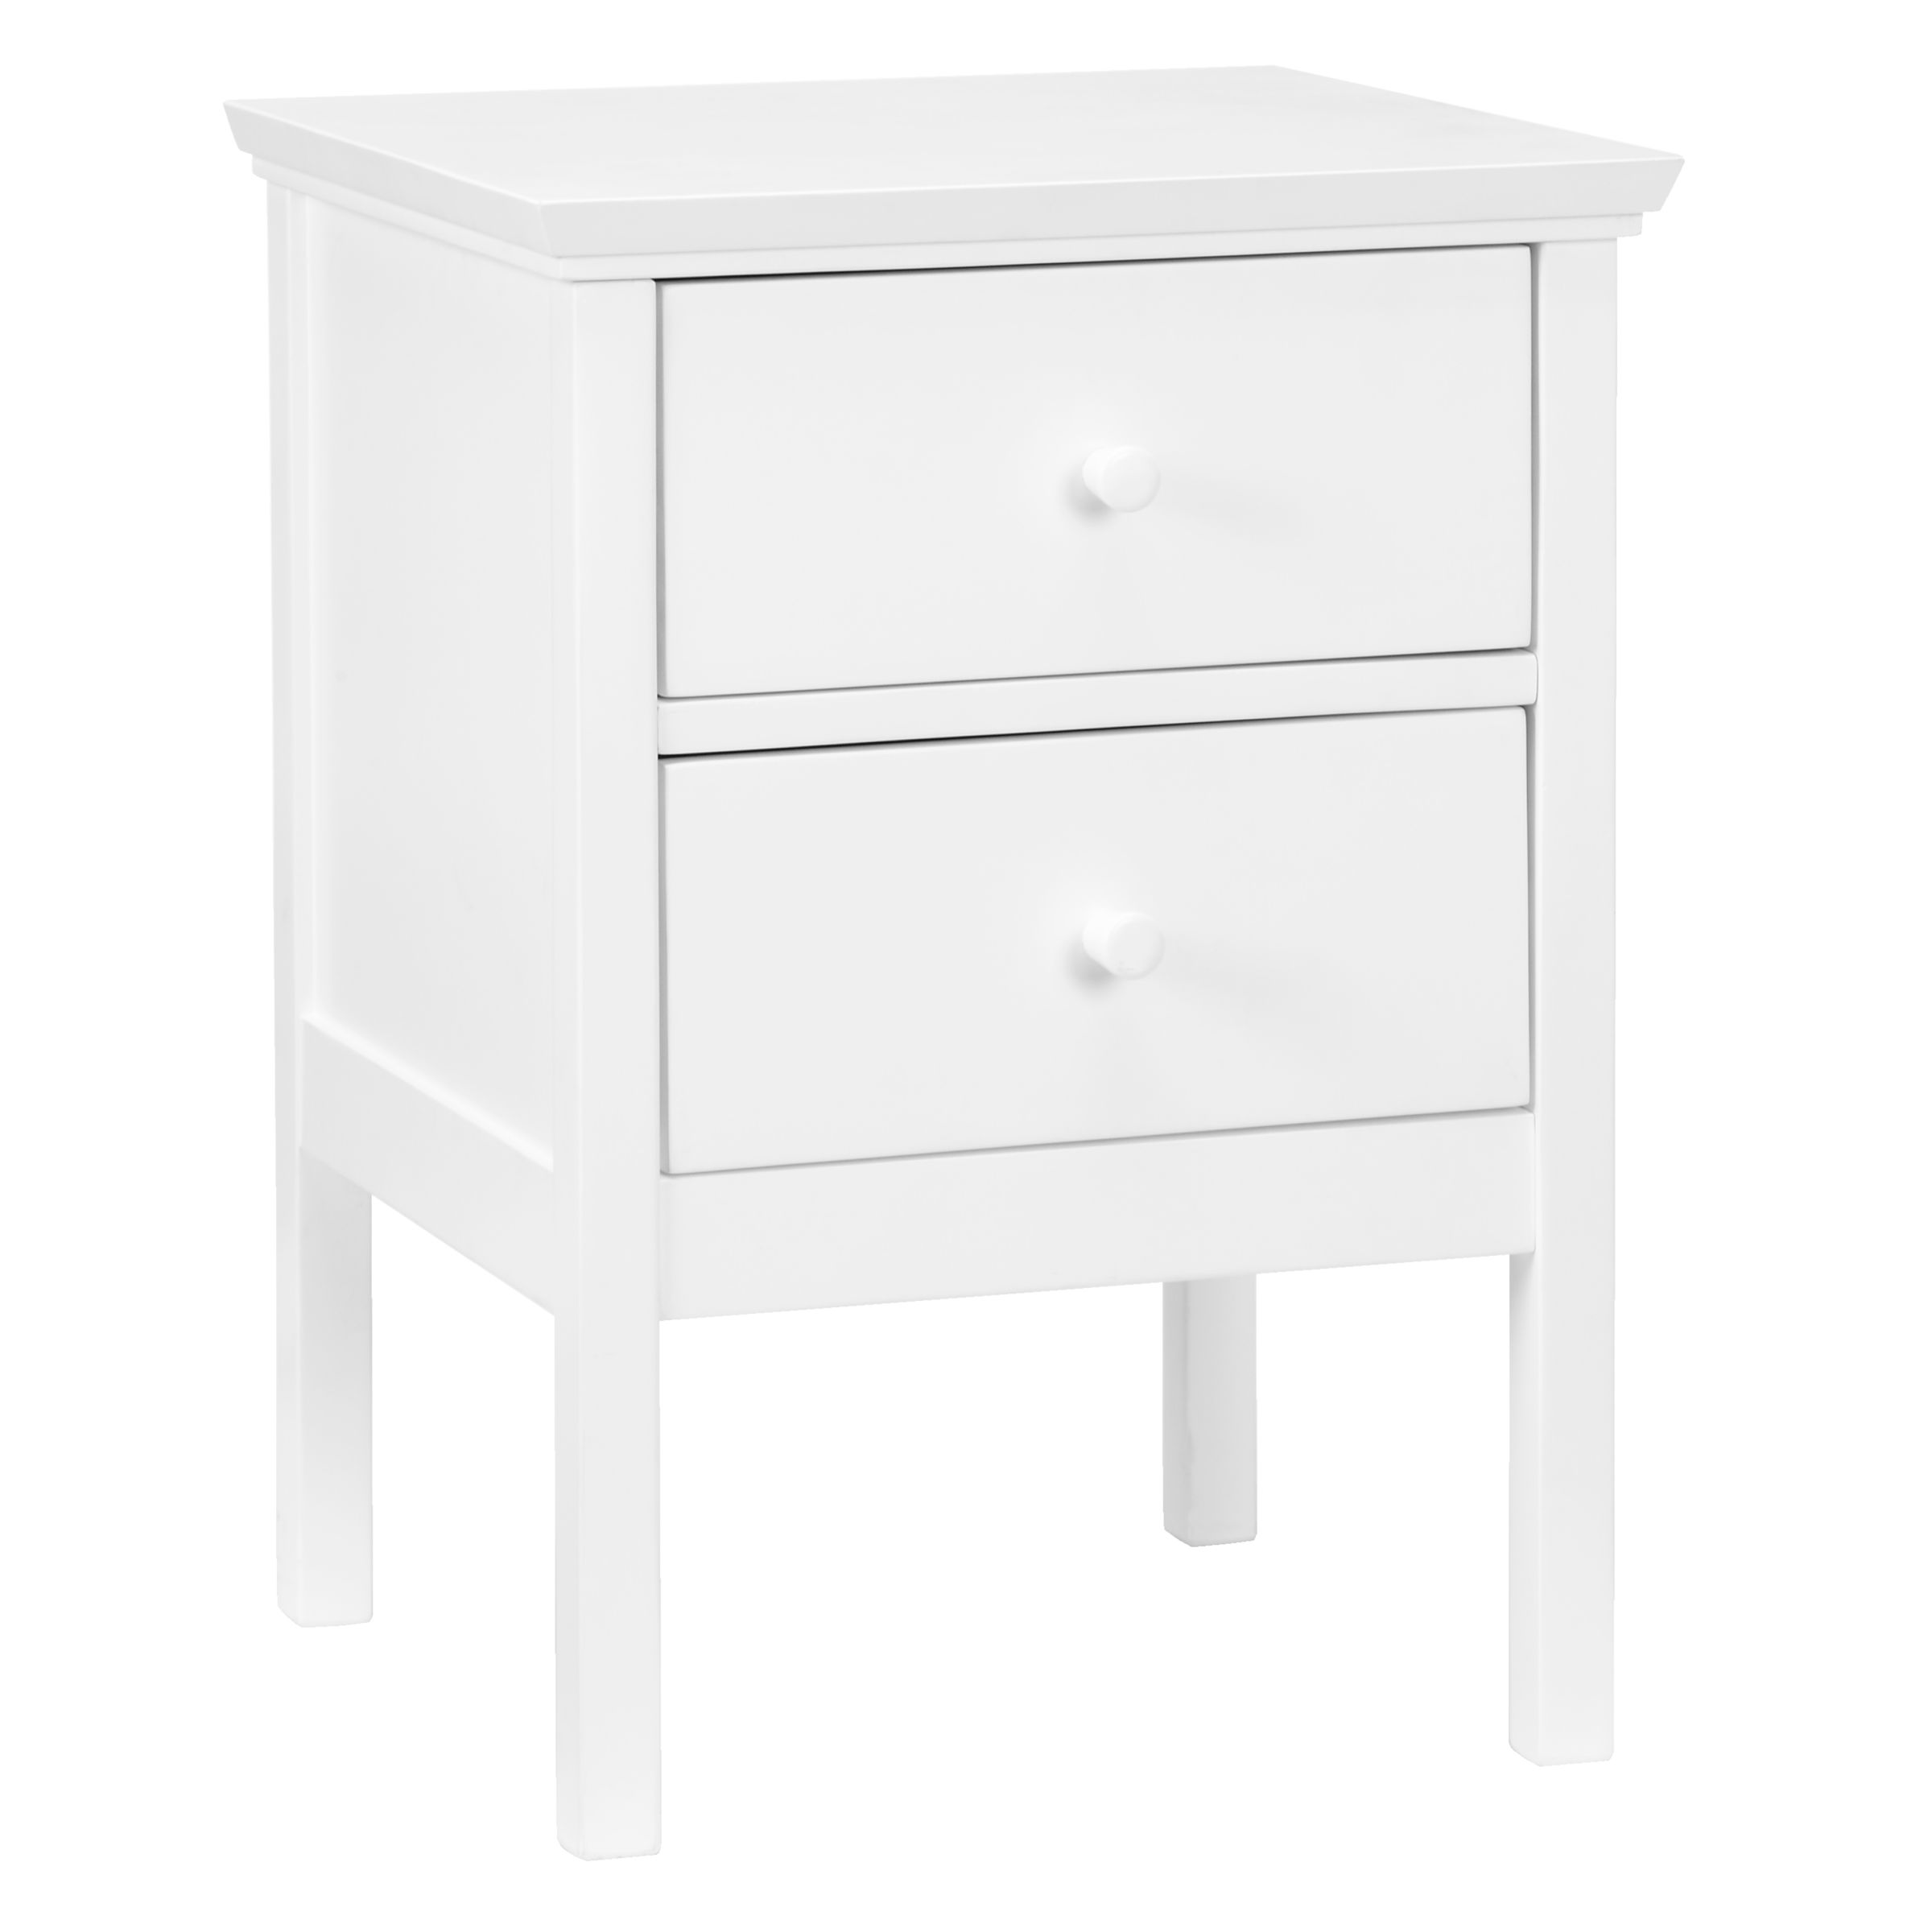 John Lewis & Partners Wilton 2 Drawer Bedside Cabinet, White